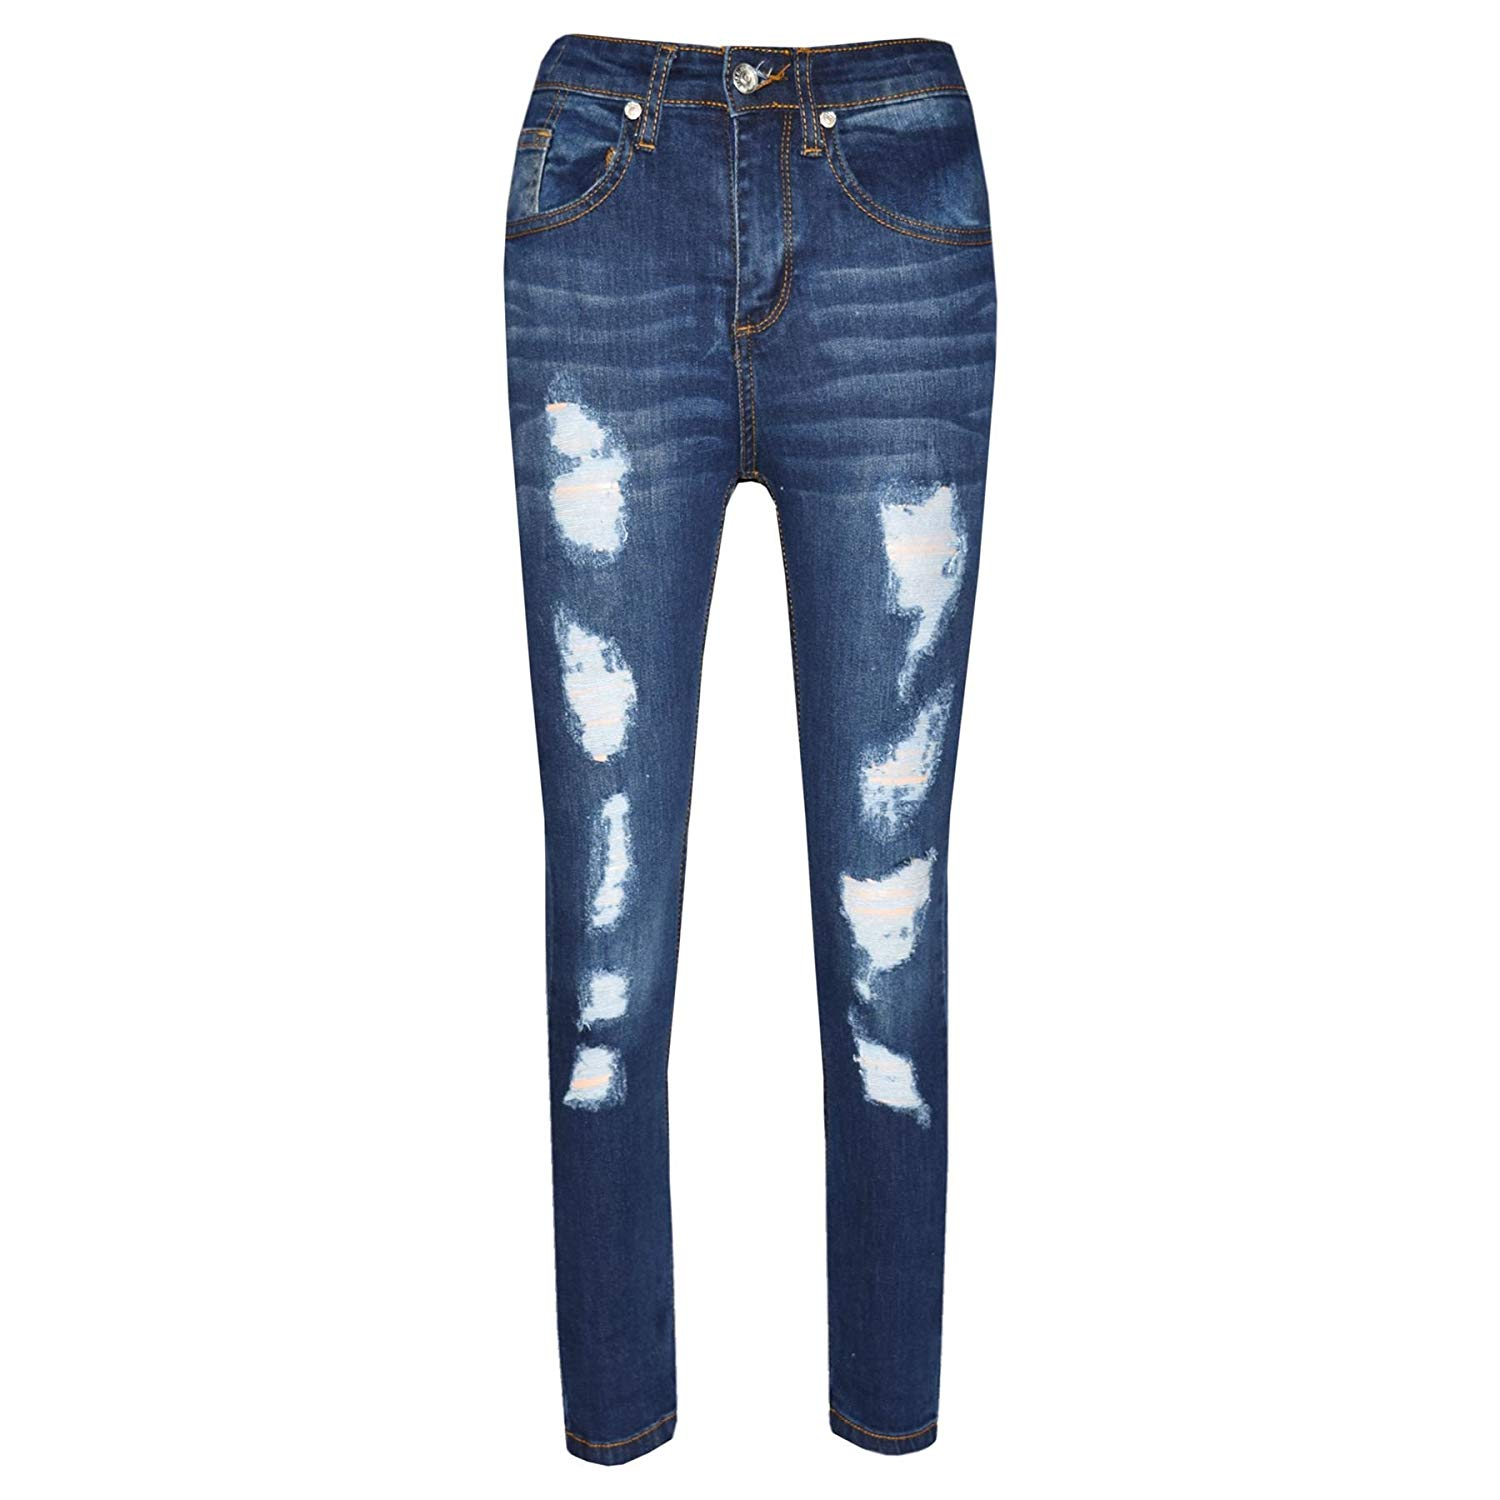 5ea1a61160d Get Quotations · Boys Stretchy Jeans Kids Ripped Dark Blue Denim Skinny  Pants Trousers 5-13 Years